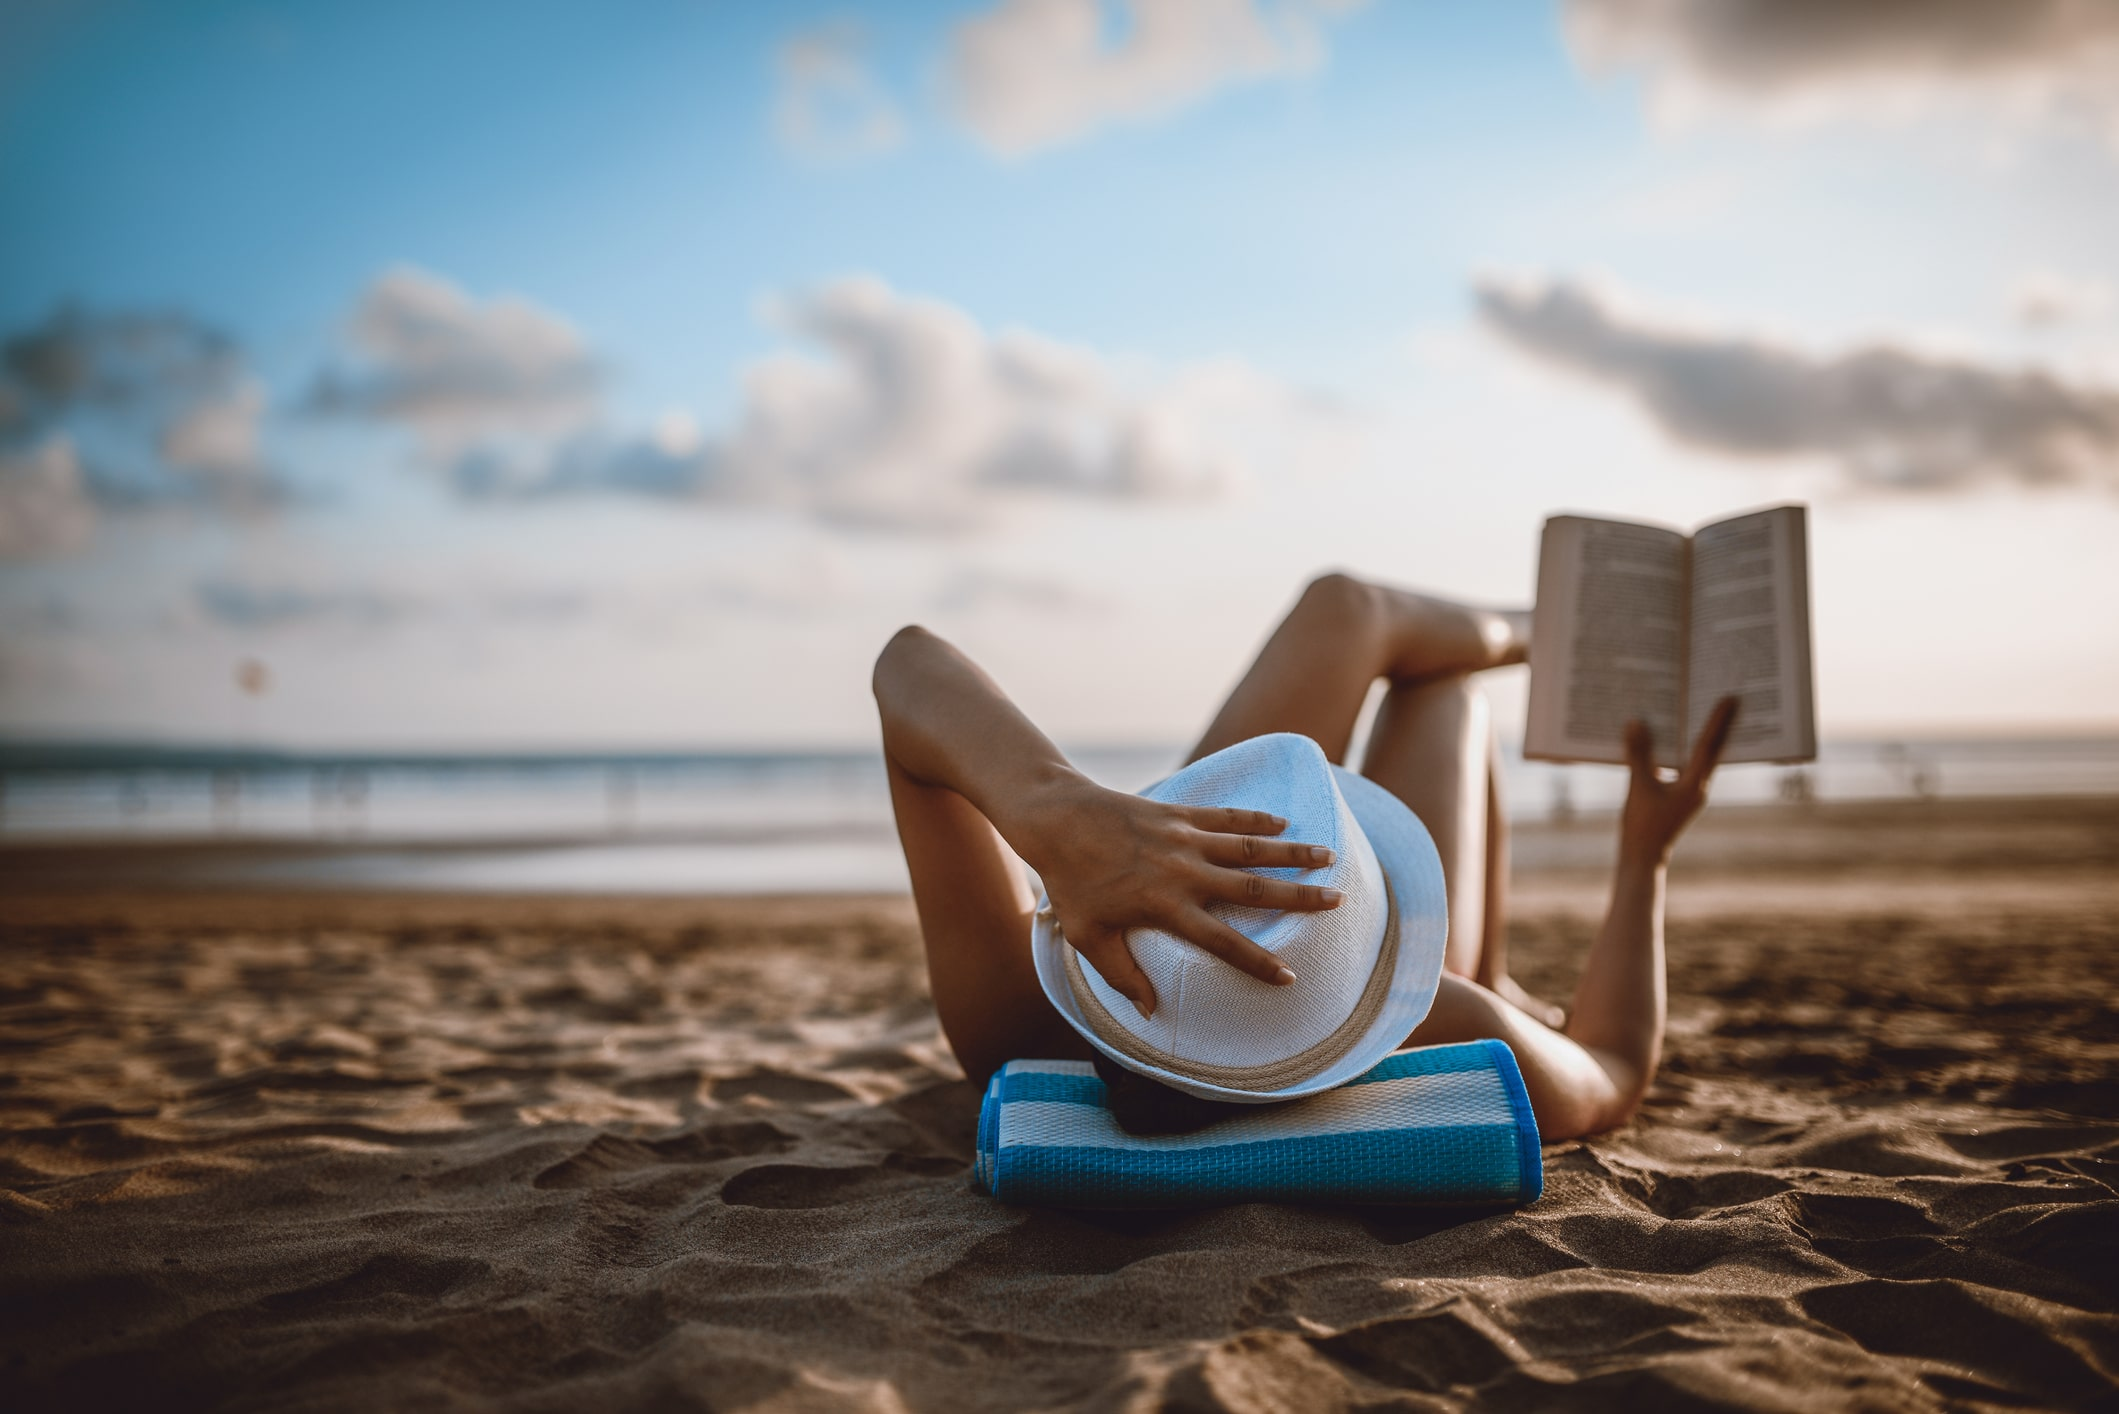 Spend your holiday among the stars with ArianeGroup's book recommendations